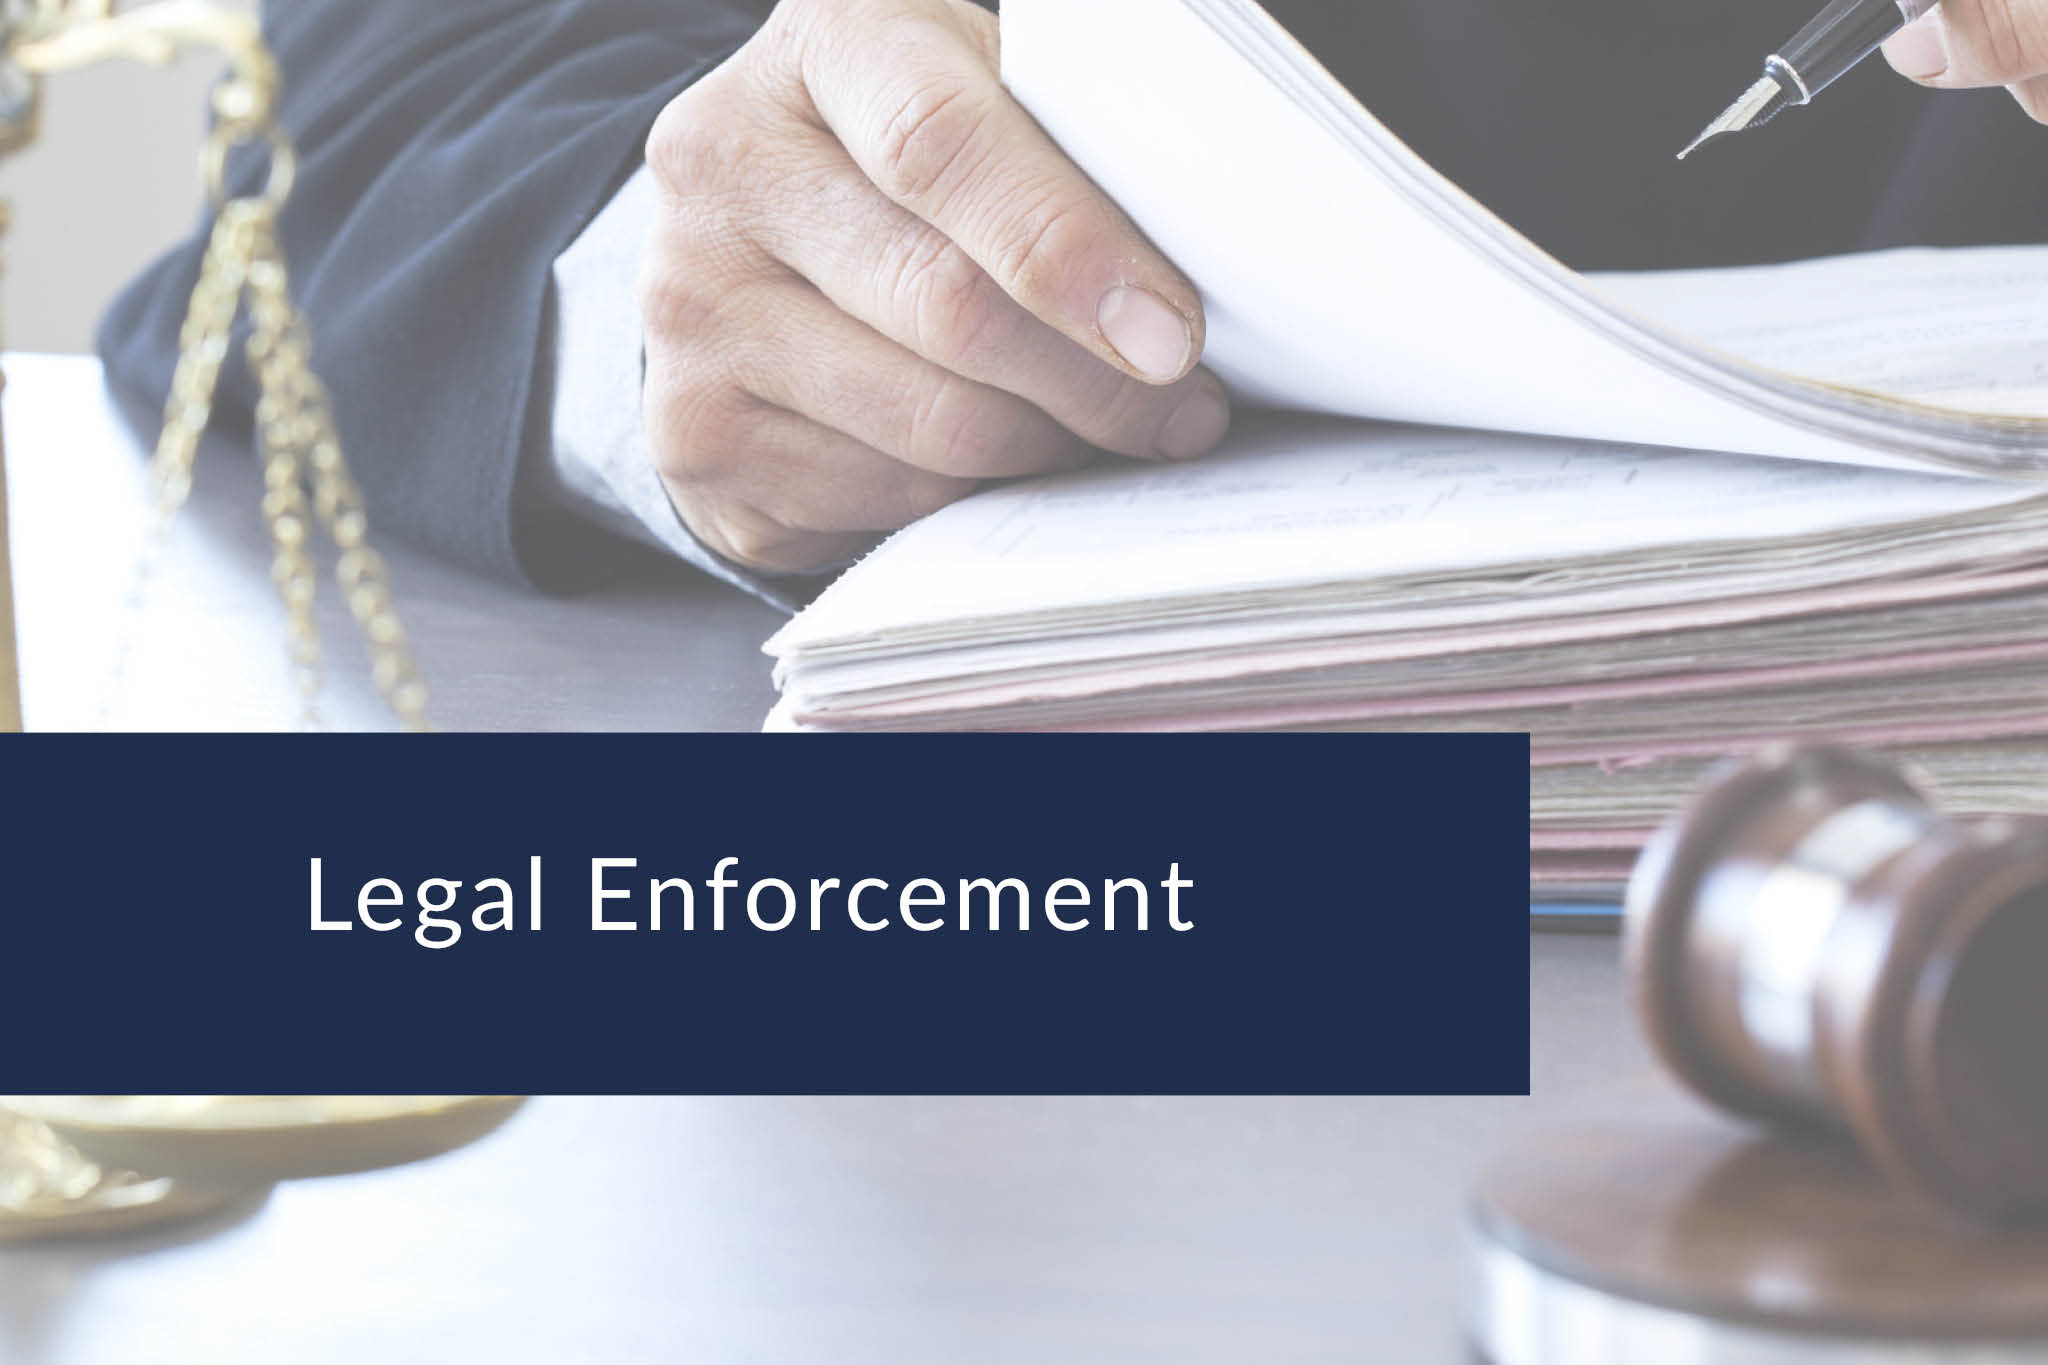 Legal enforcement